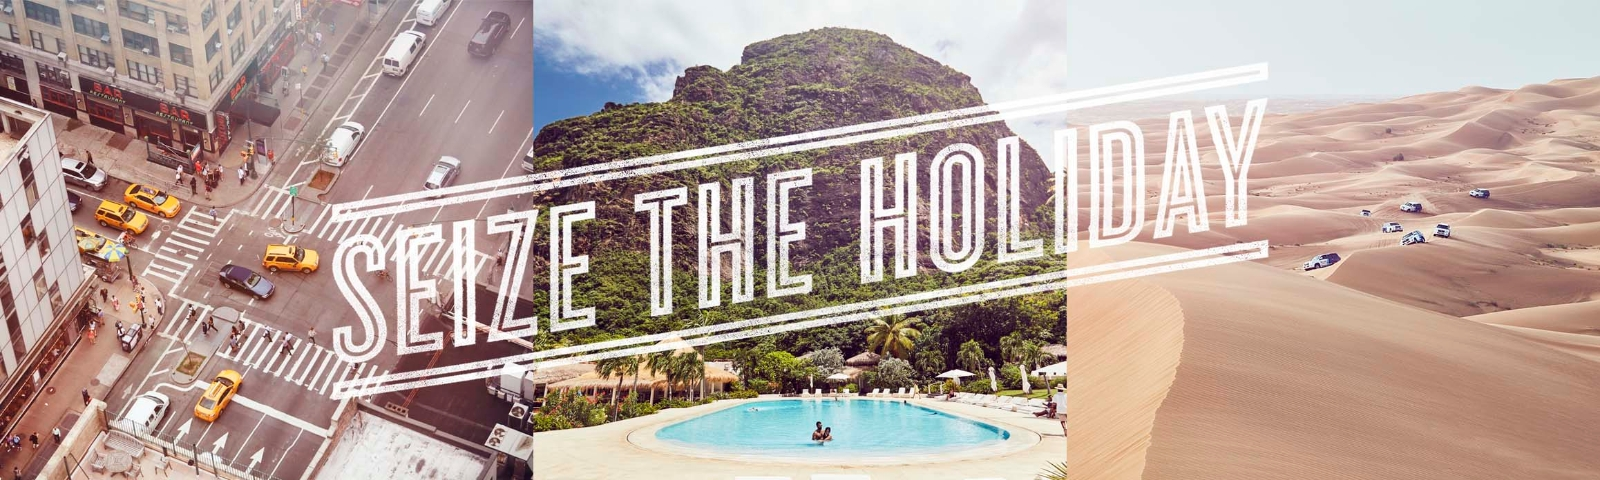 Seize The Holiday Virgin Holidays